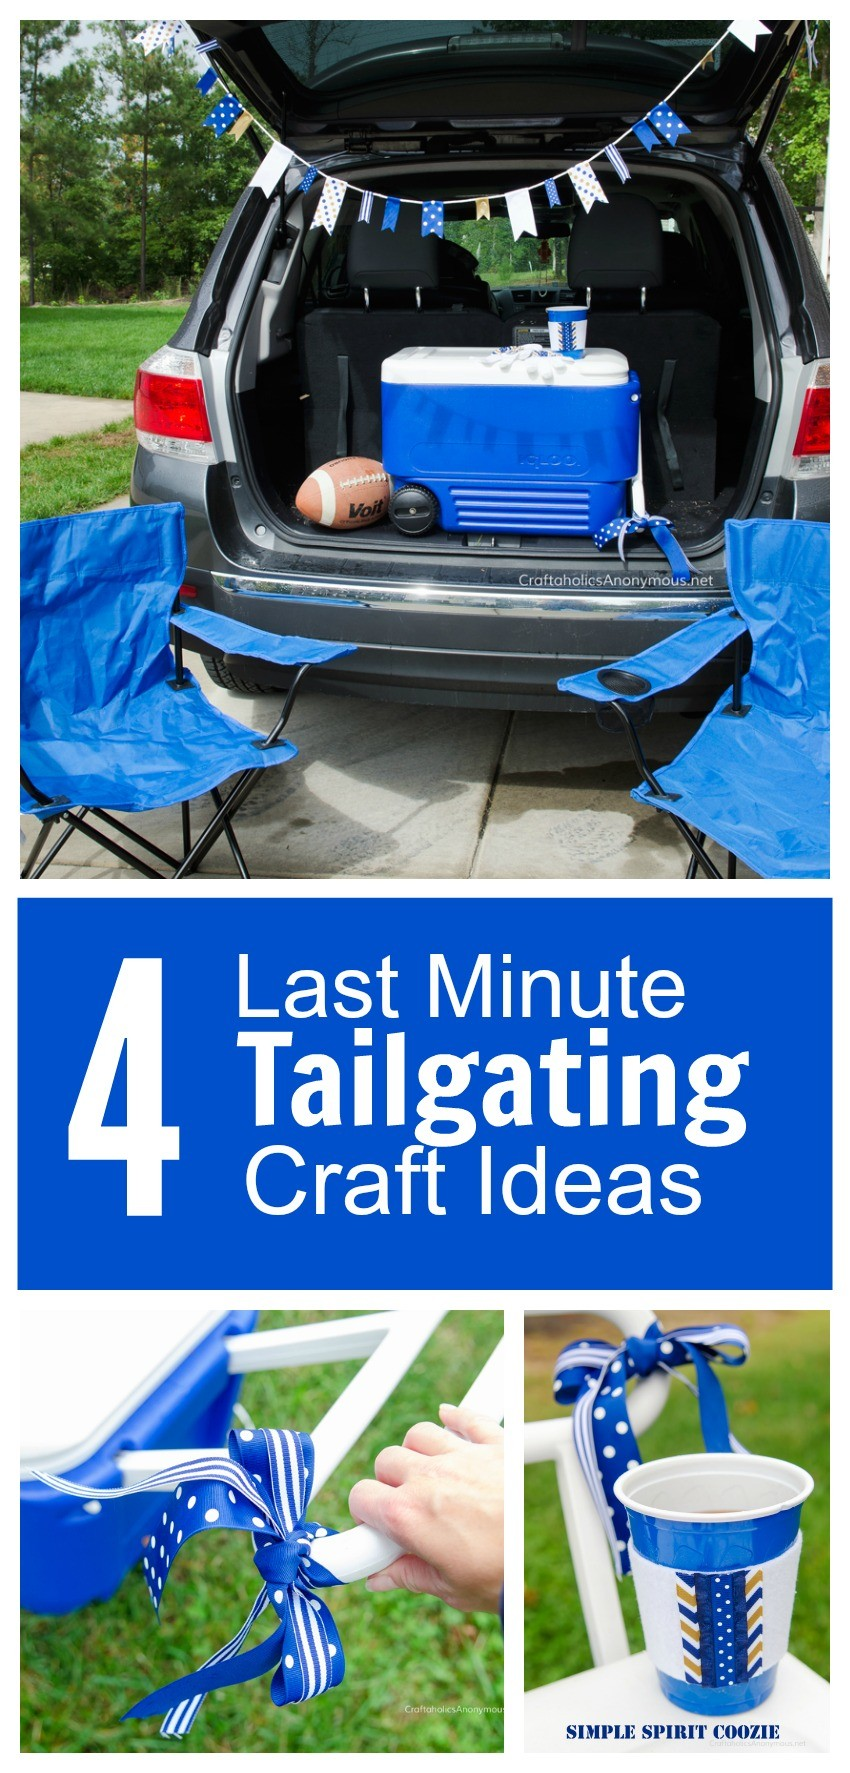 4 Last Minute Tailgating Craft Ideas you can do in minutes!